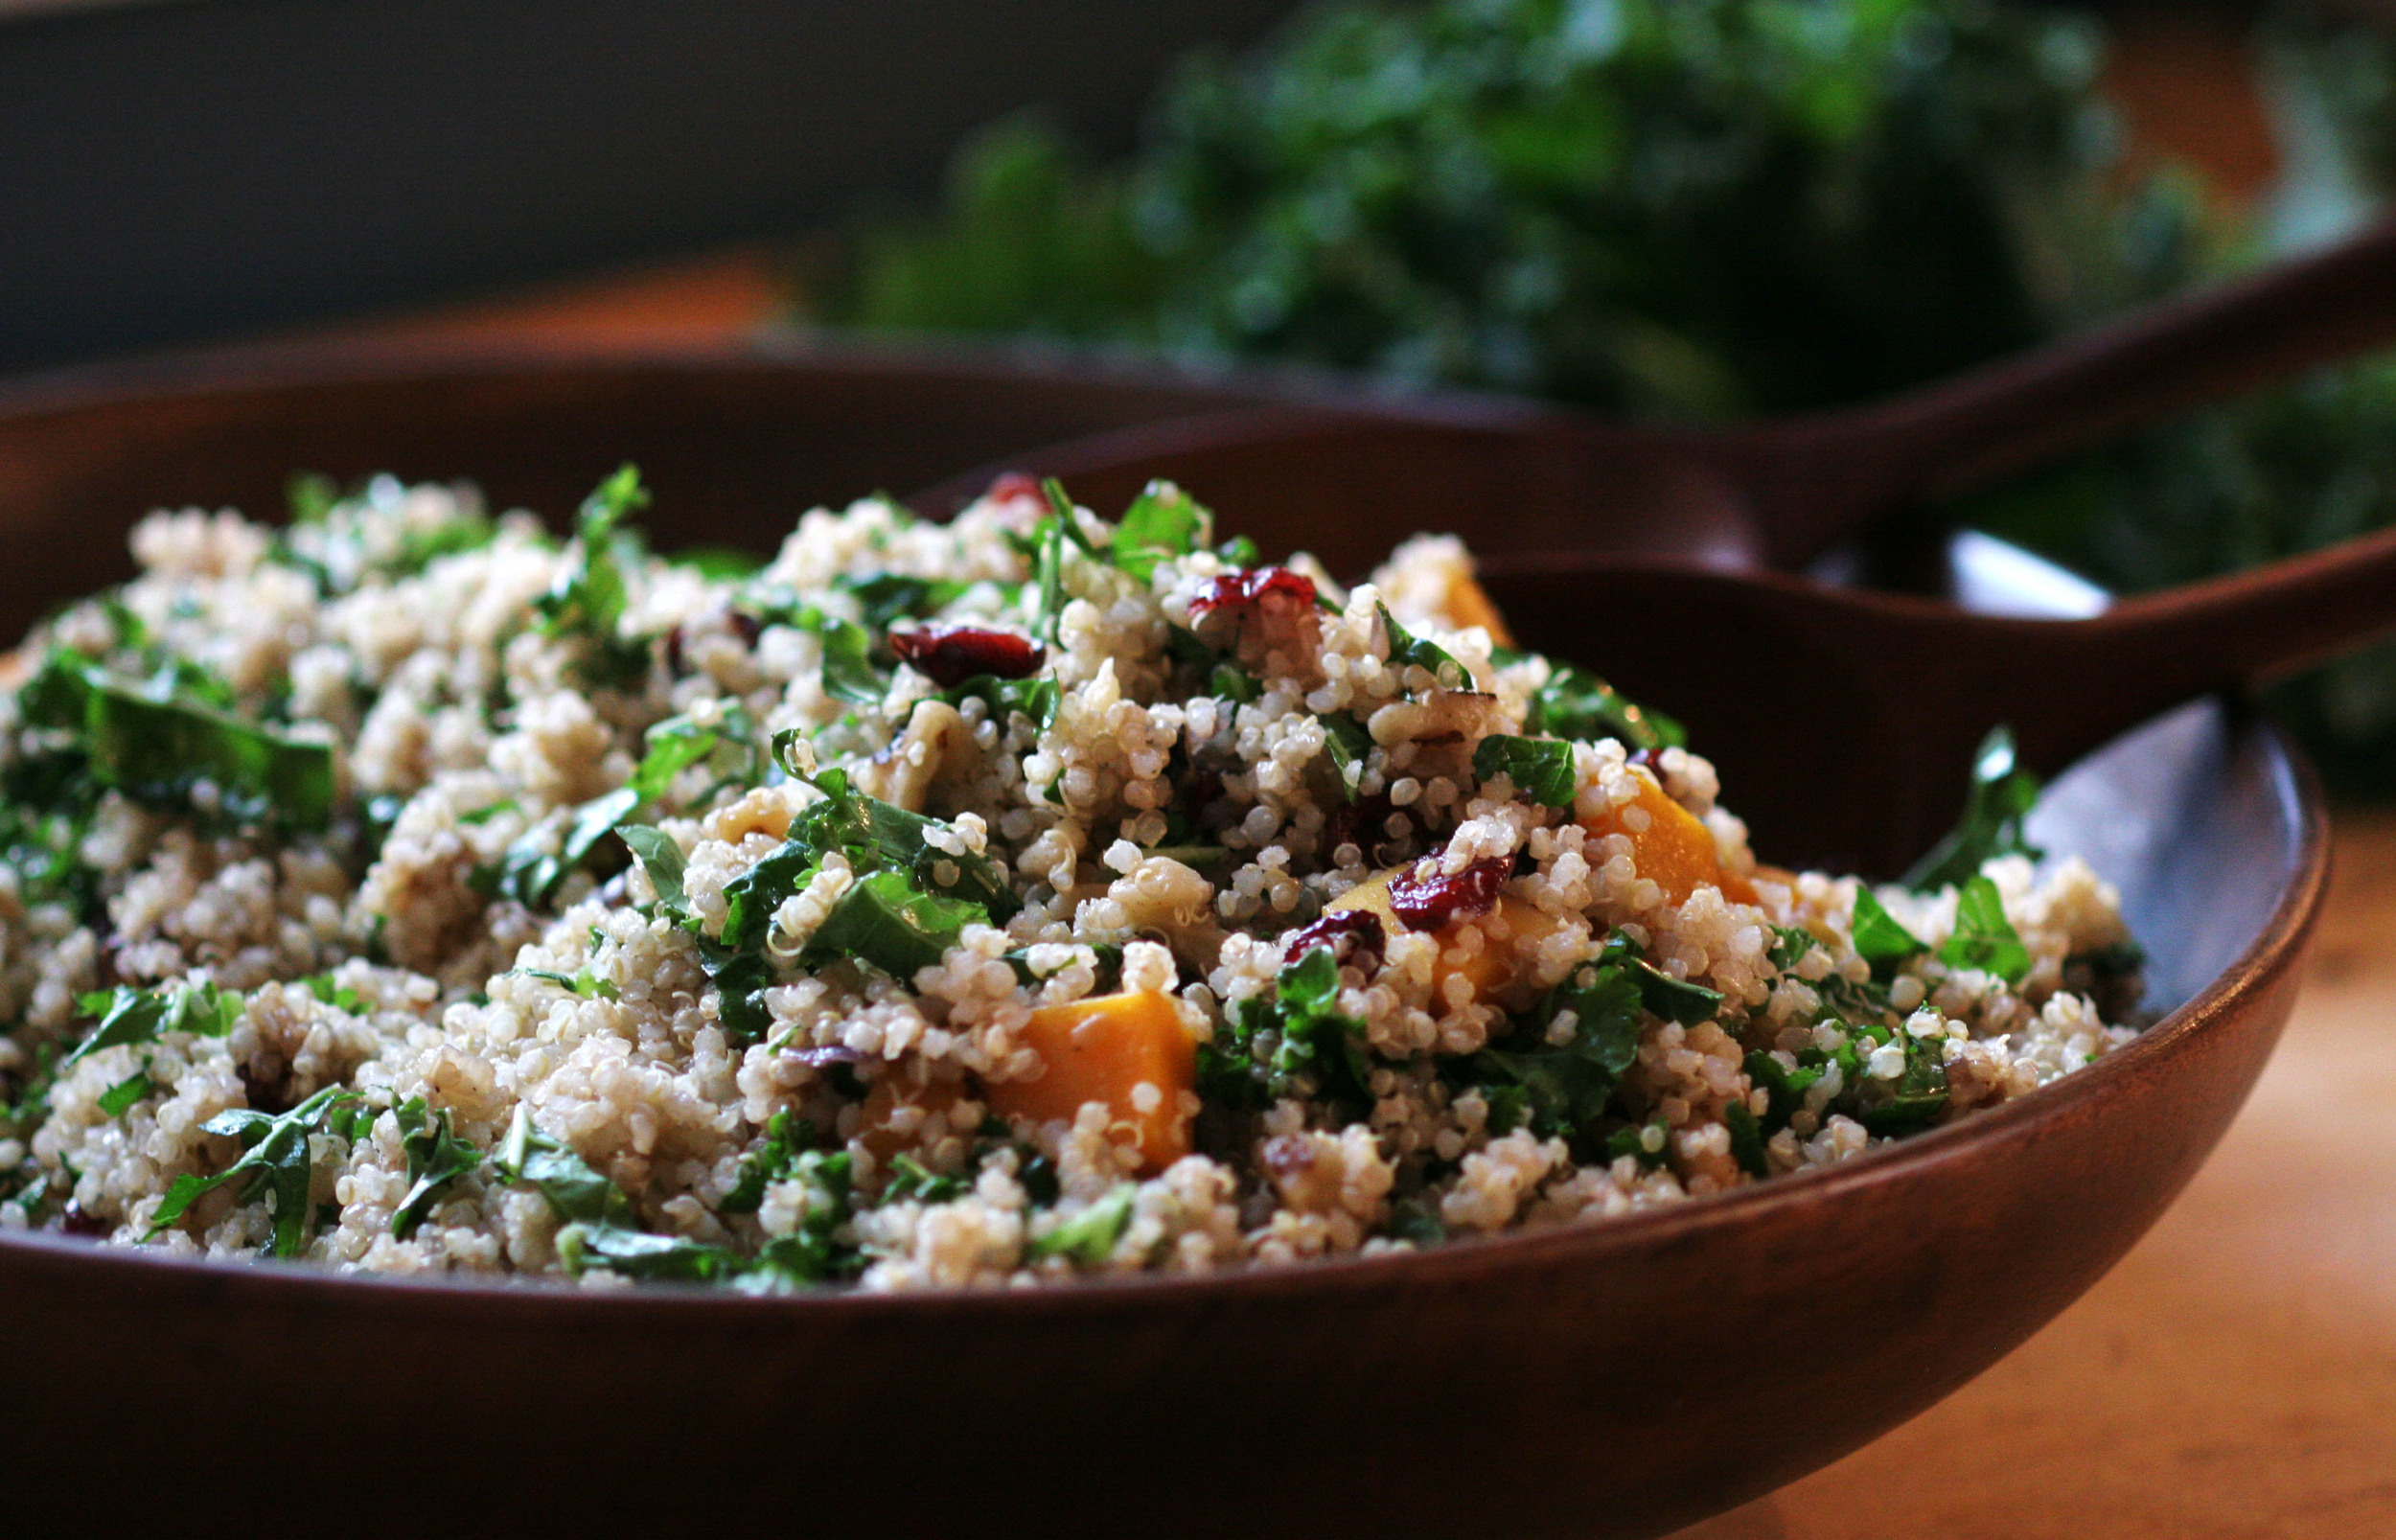 This salad is a great dish to bring to a holiday potluck.                                                                                               Photo: Rachel J. Weston